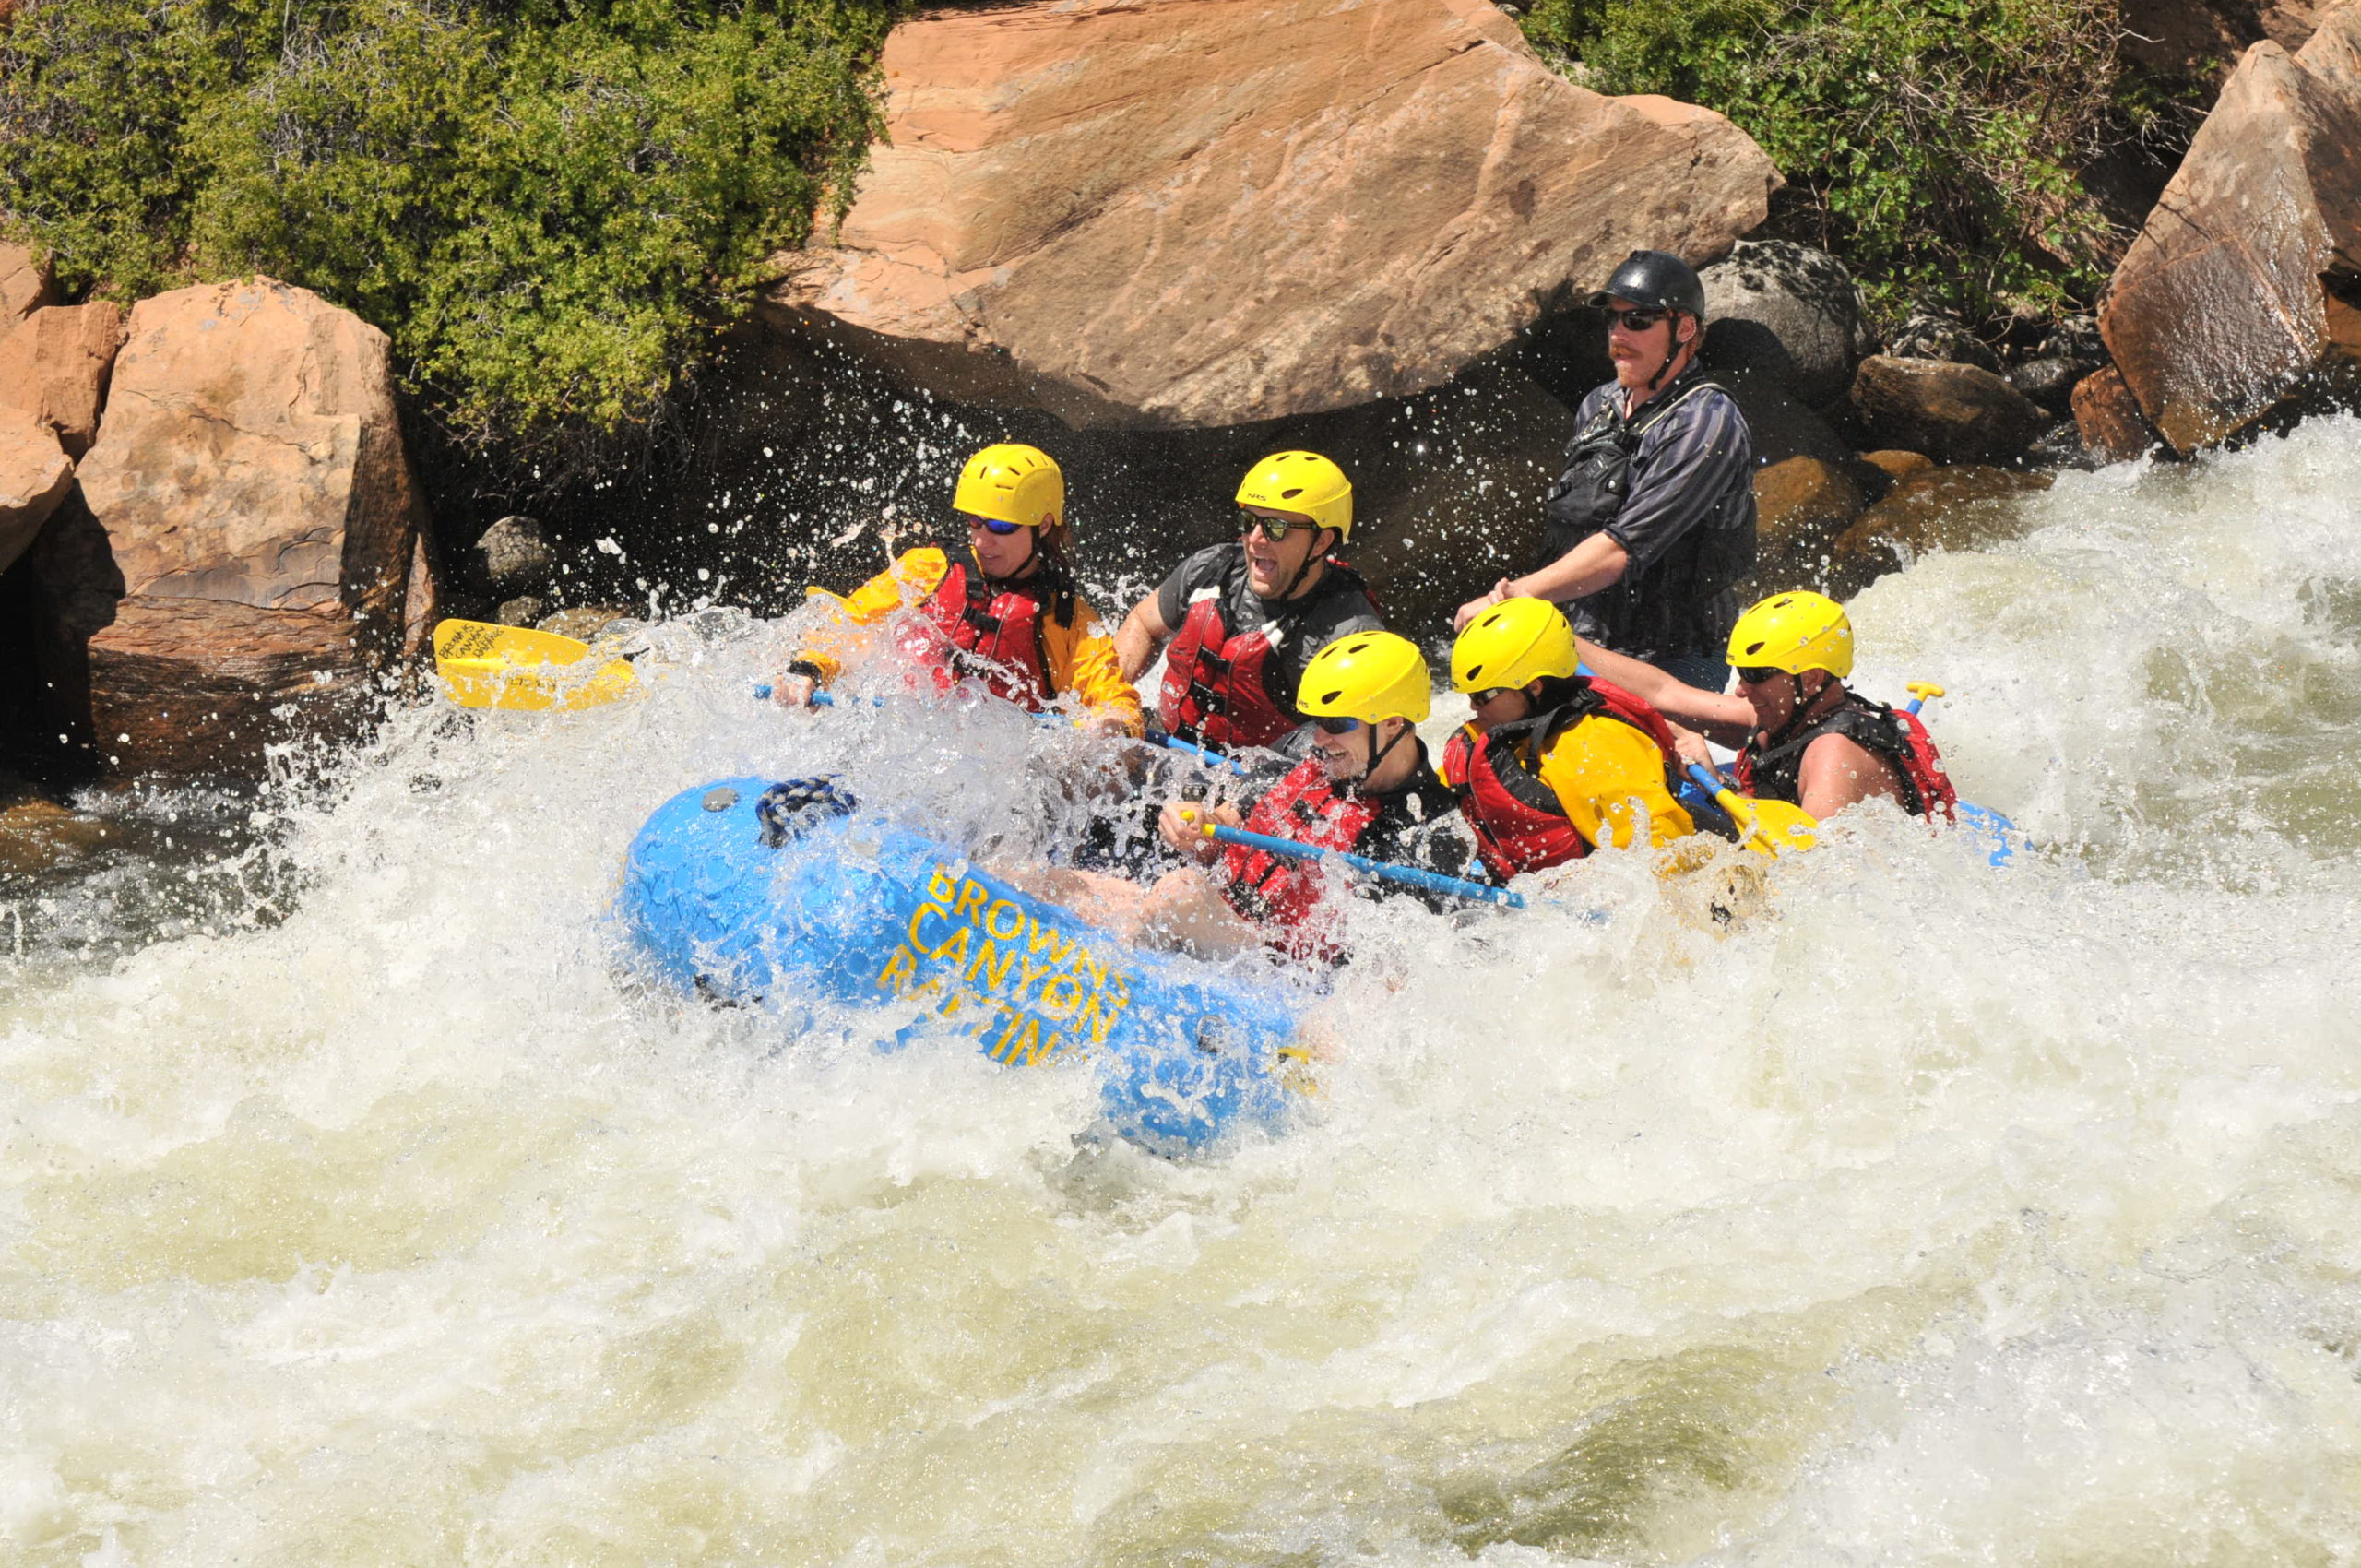 buena vista colorado arkansas river white water rafting